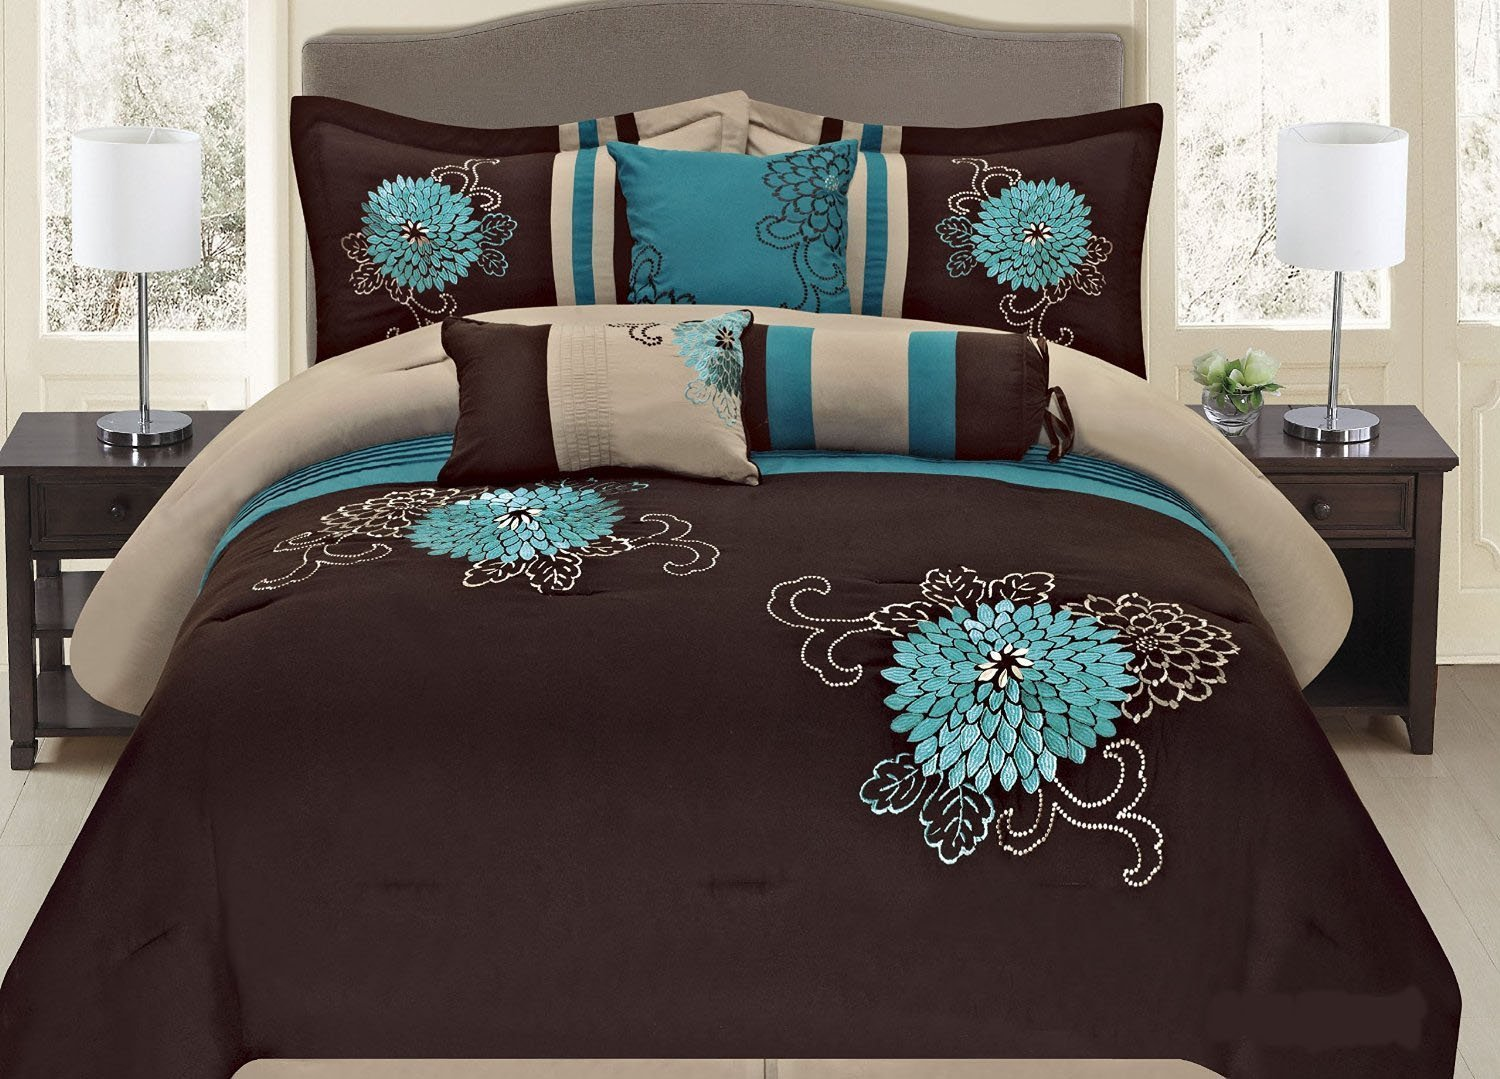 7 Pc Brown Teal And Taupe Fl Striped Design Full Size Comforter Set By